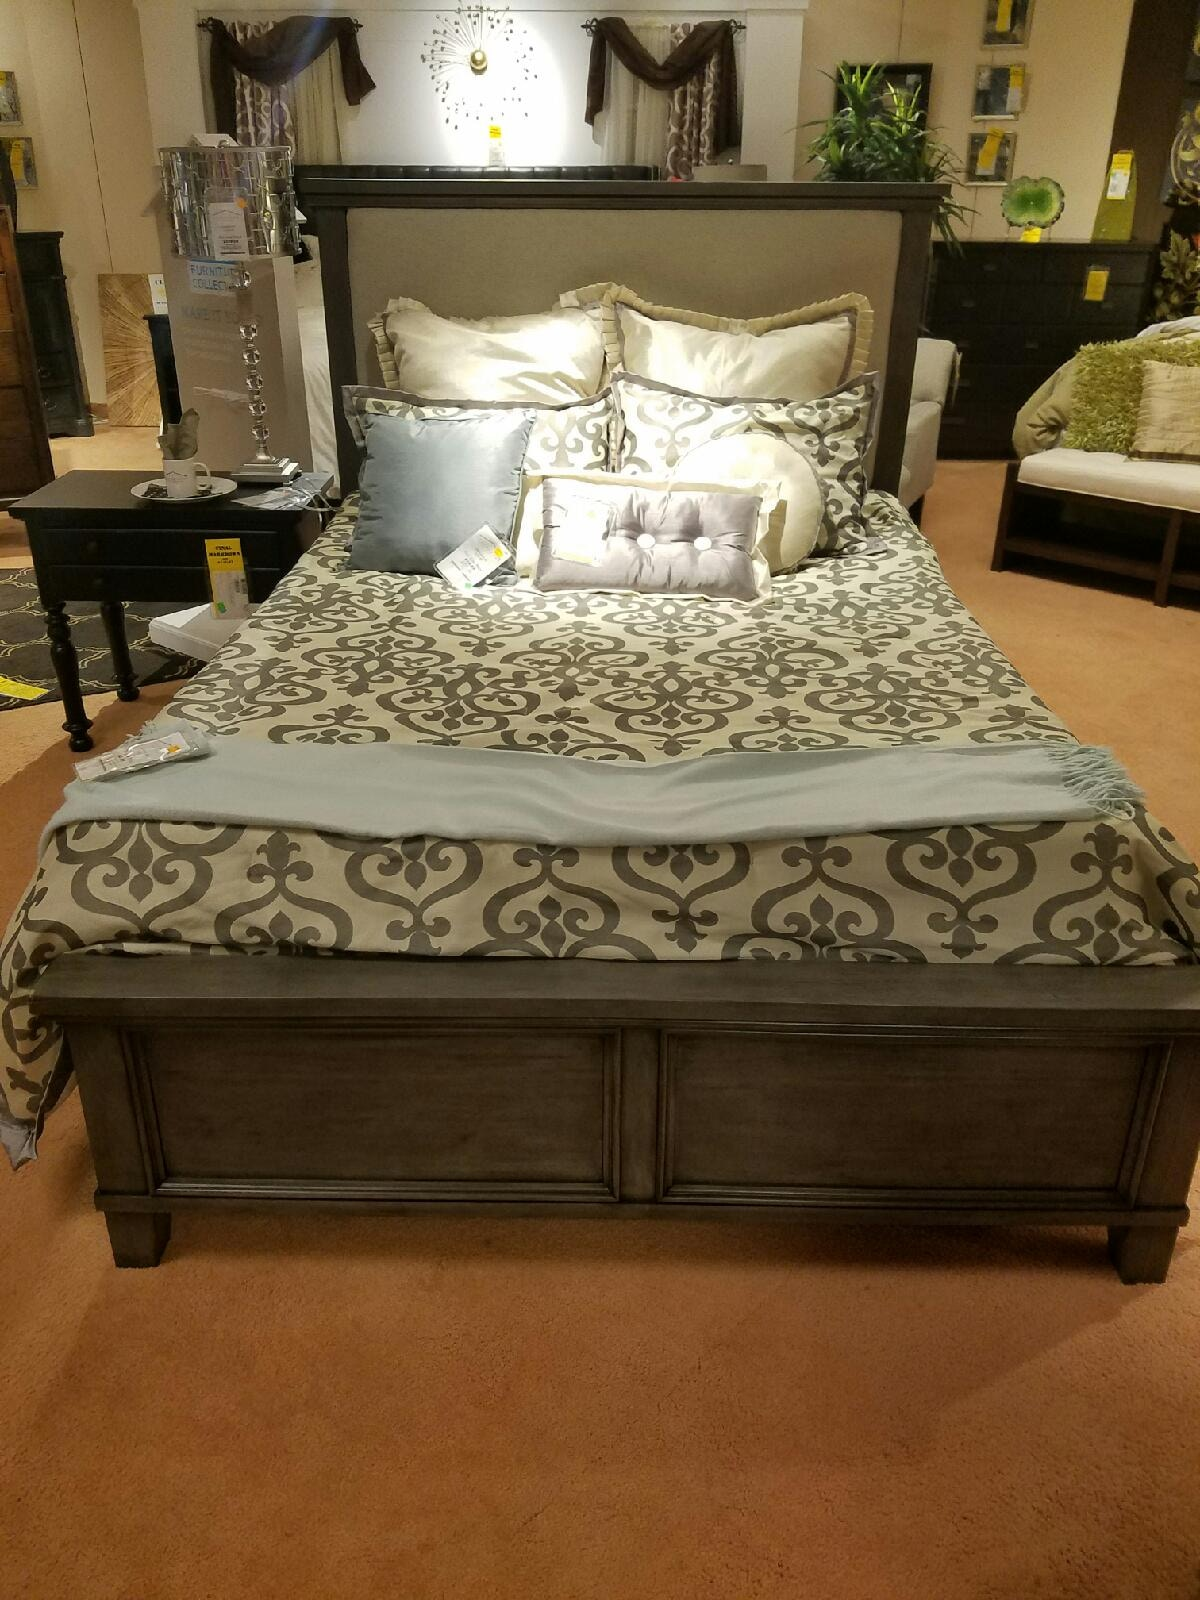 Bedroom Sets Rockford Il bassett brentwood queen bed, dresser, and mirror 2794-set